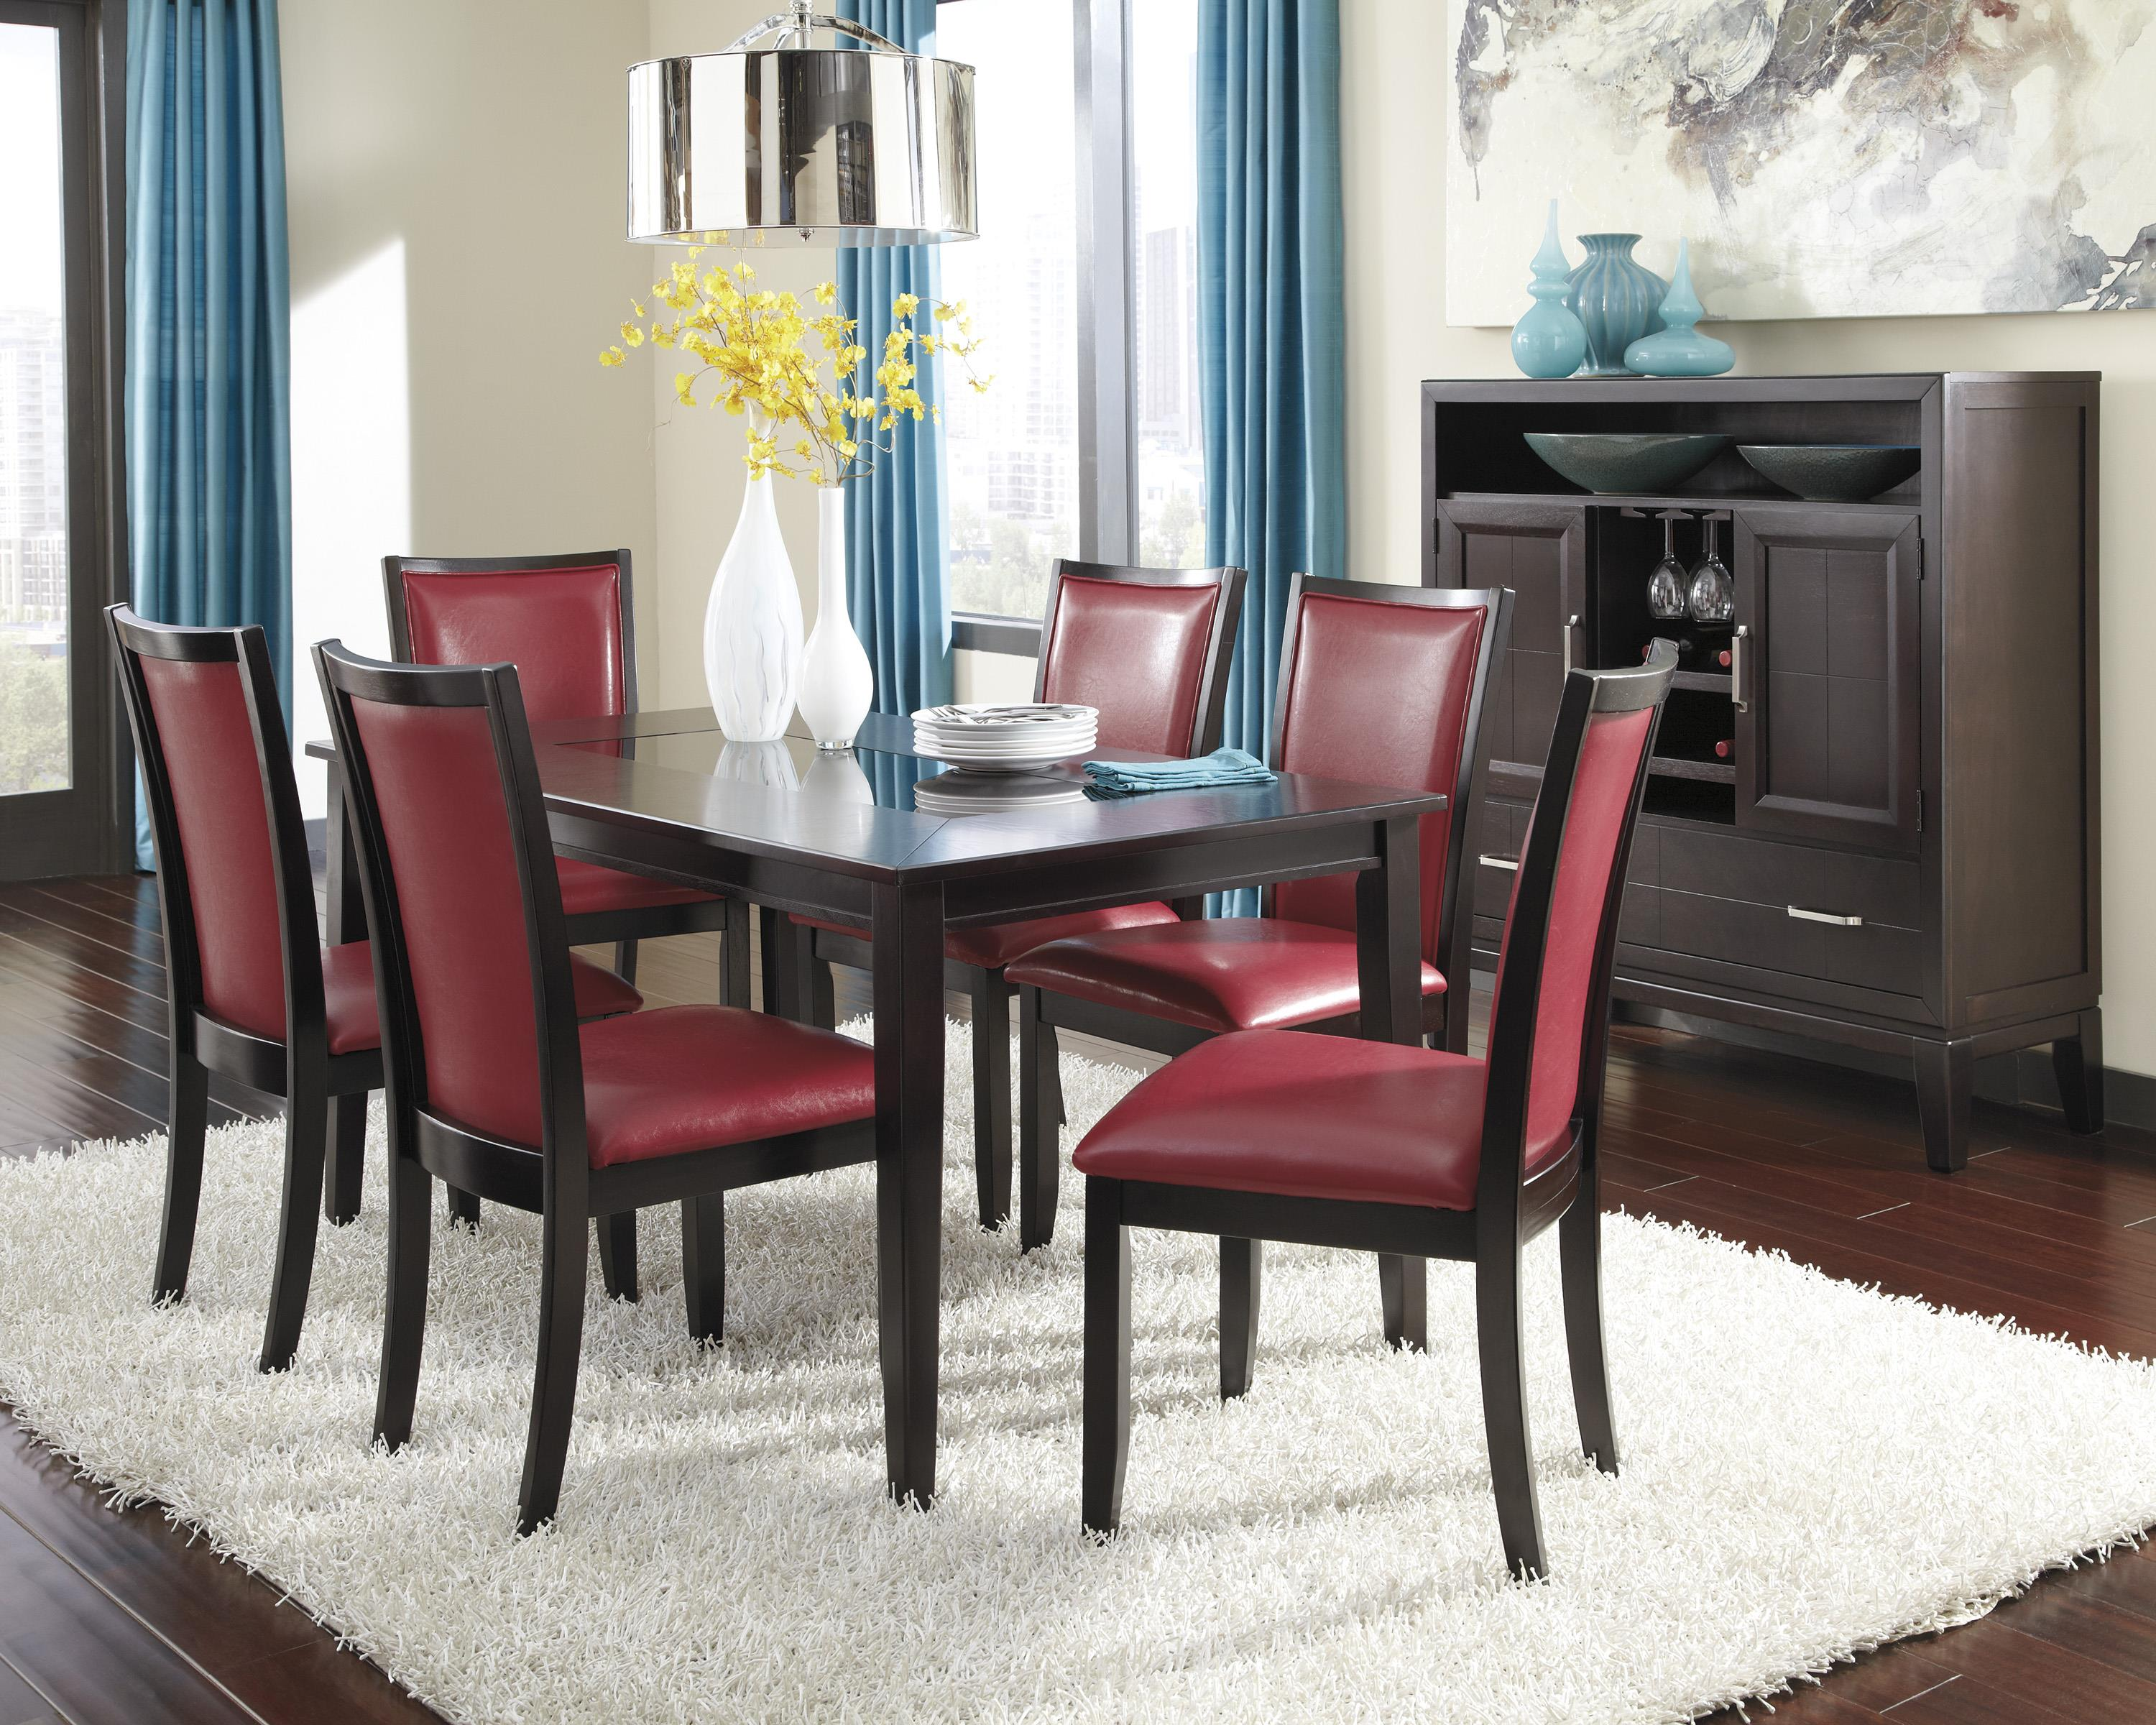 7 Piece Rectangular Dining Table Set with Red Chairs by Ashley